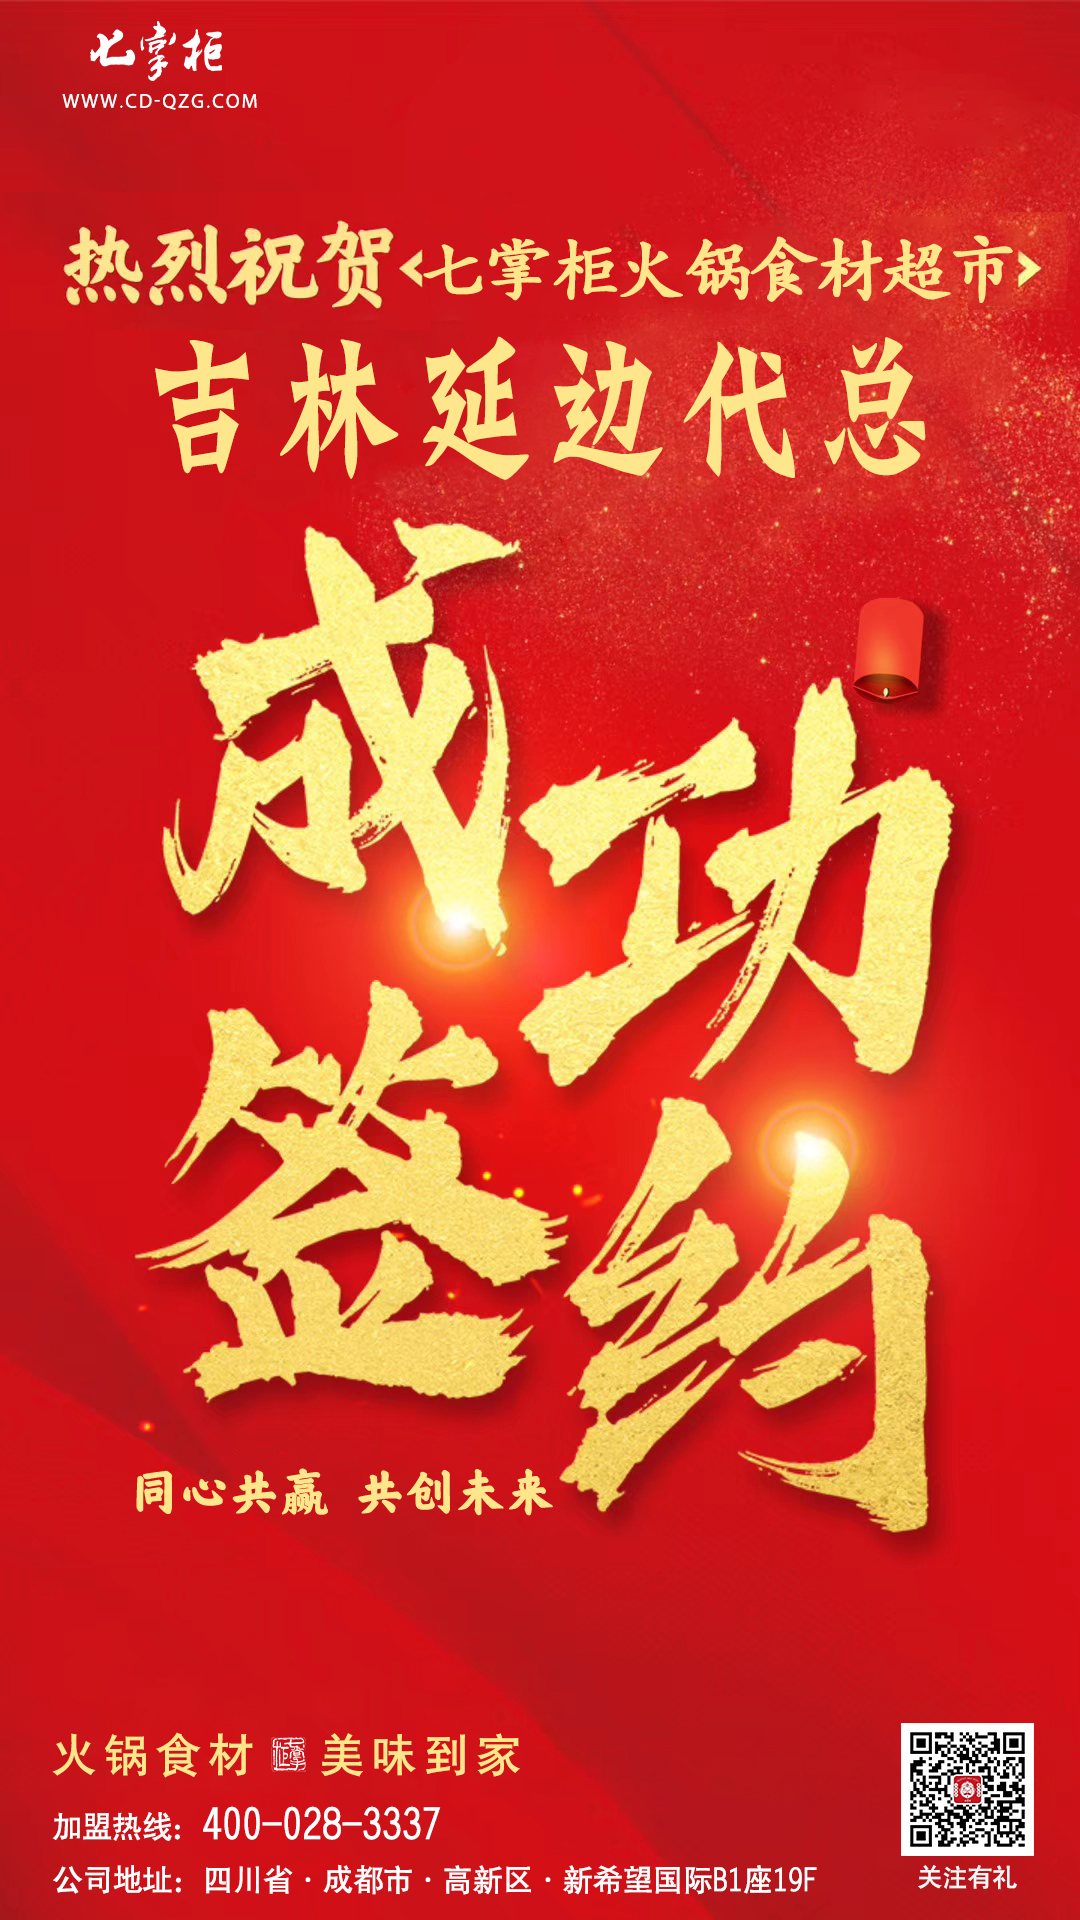 <strong>热烈祝贺七掌柜火锅食材</strong>